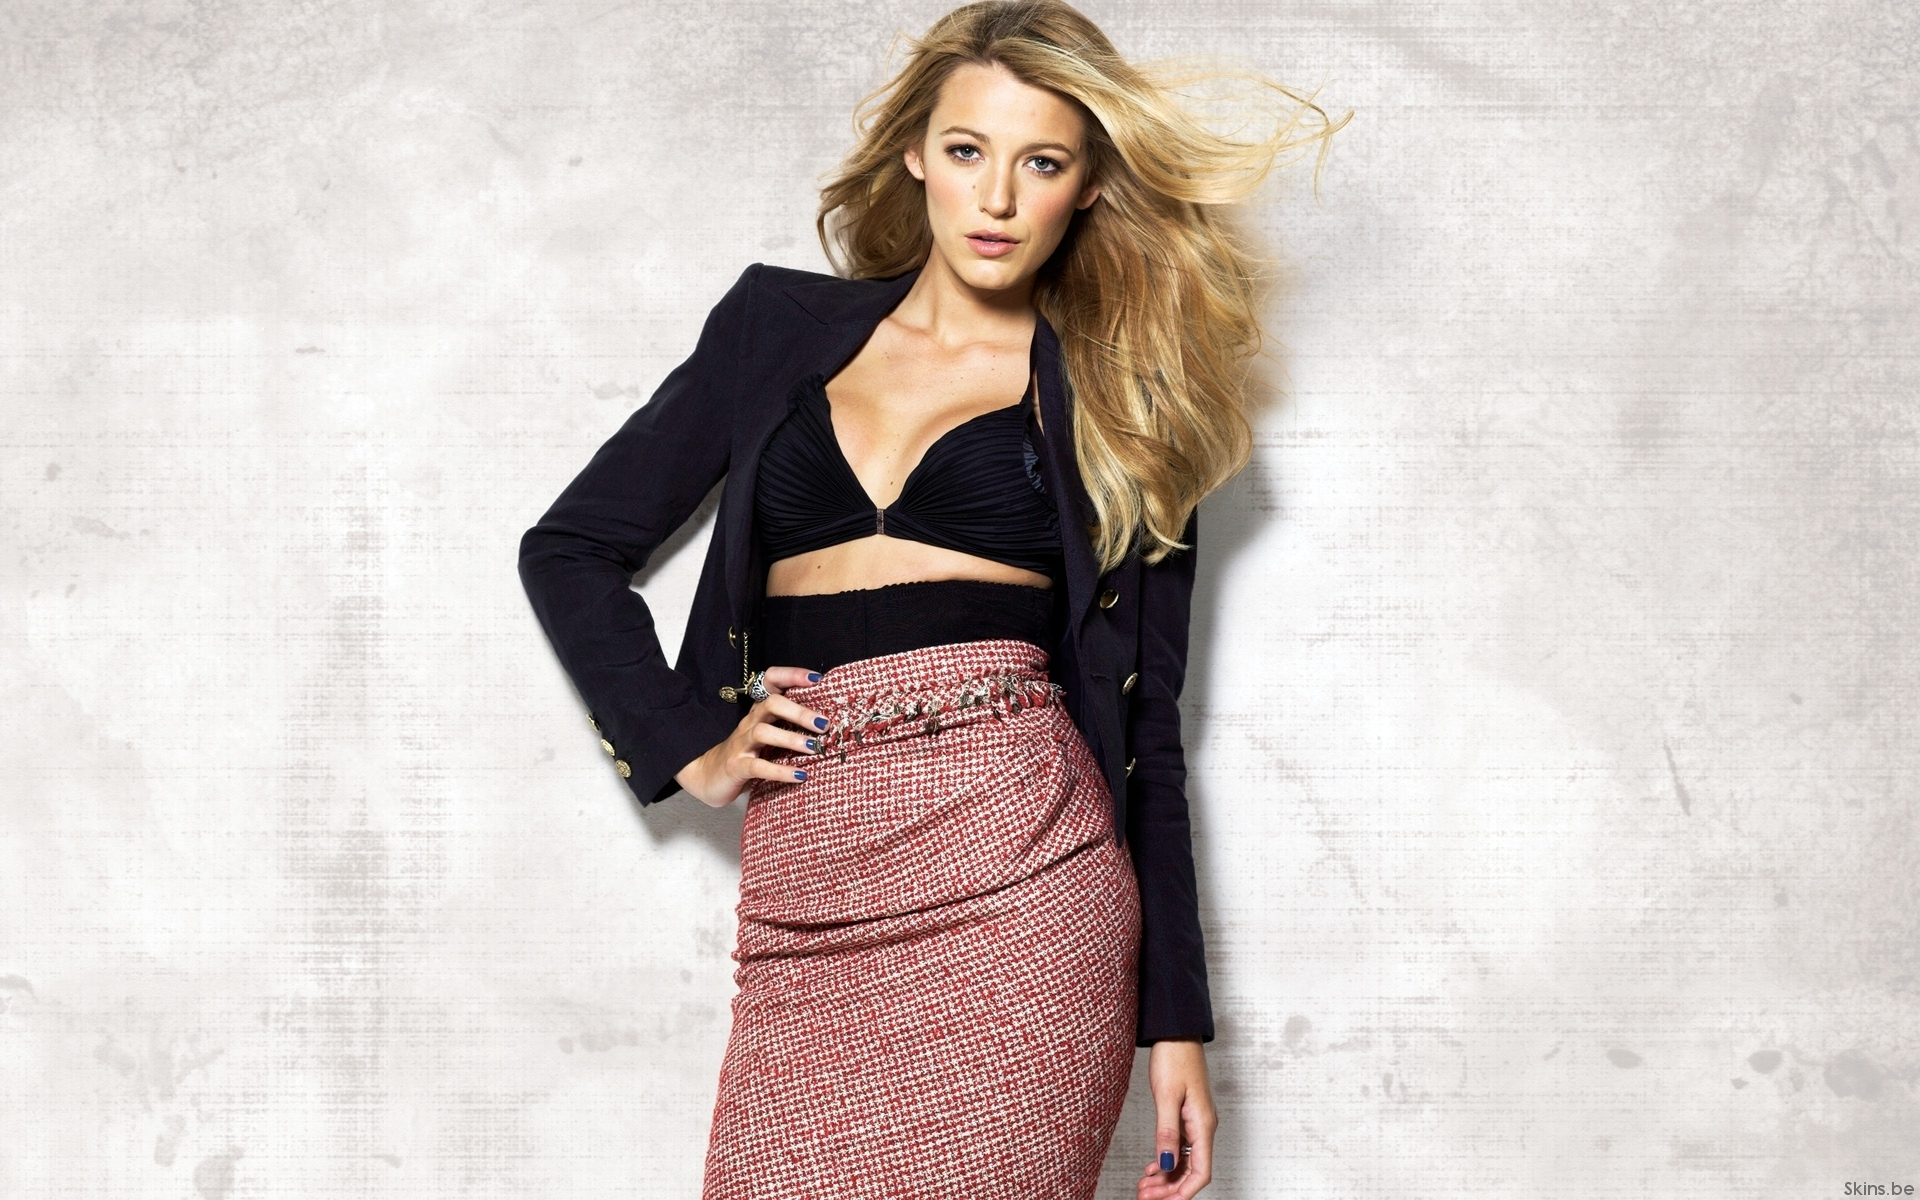 blake lively images blake <3 hd wallpaper and background photos